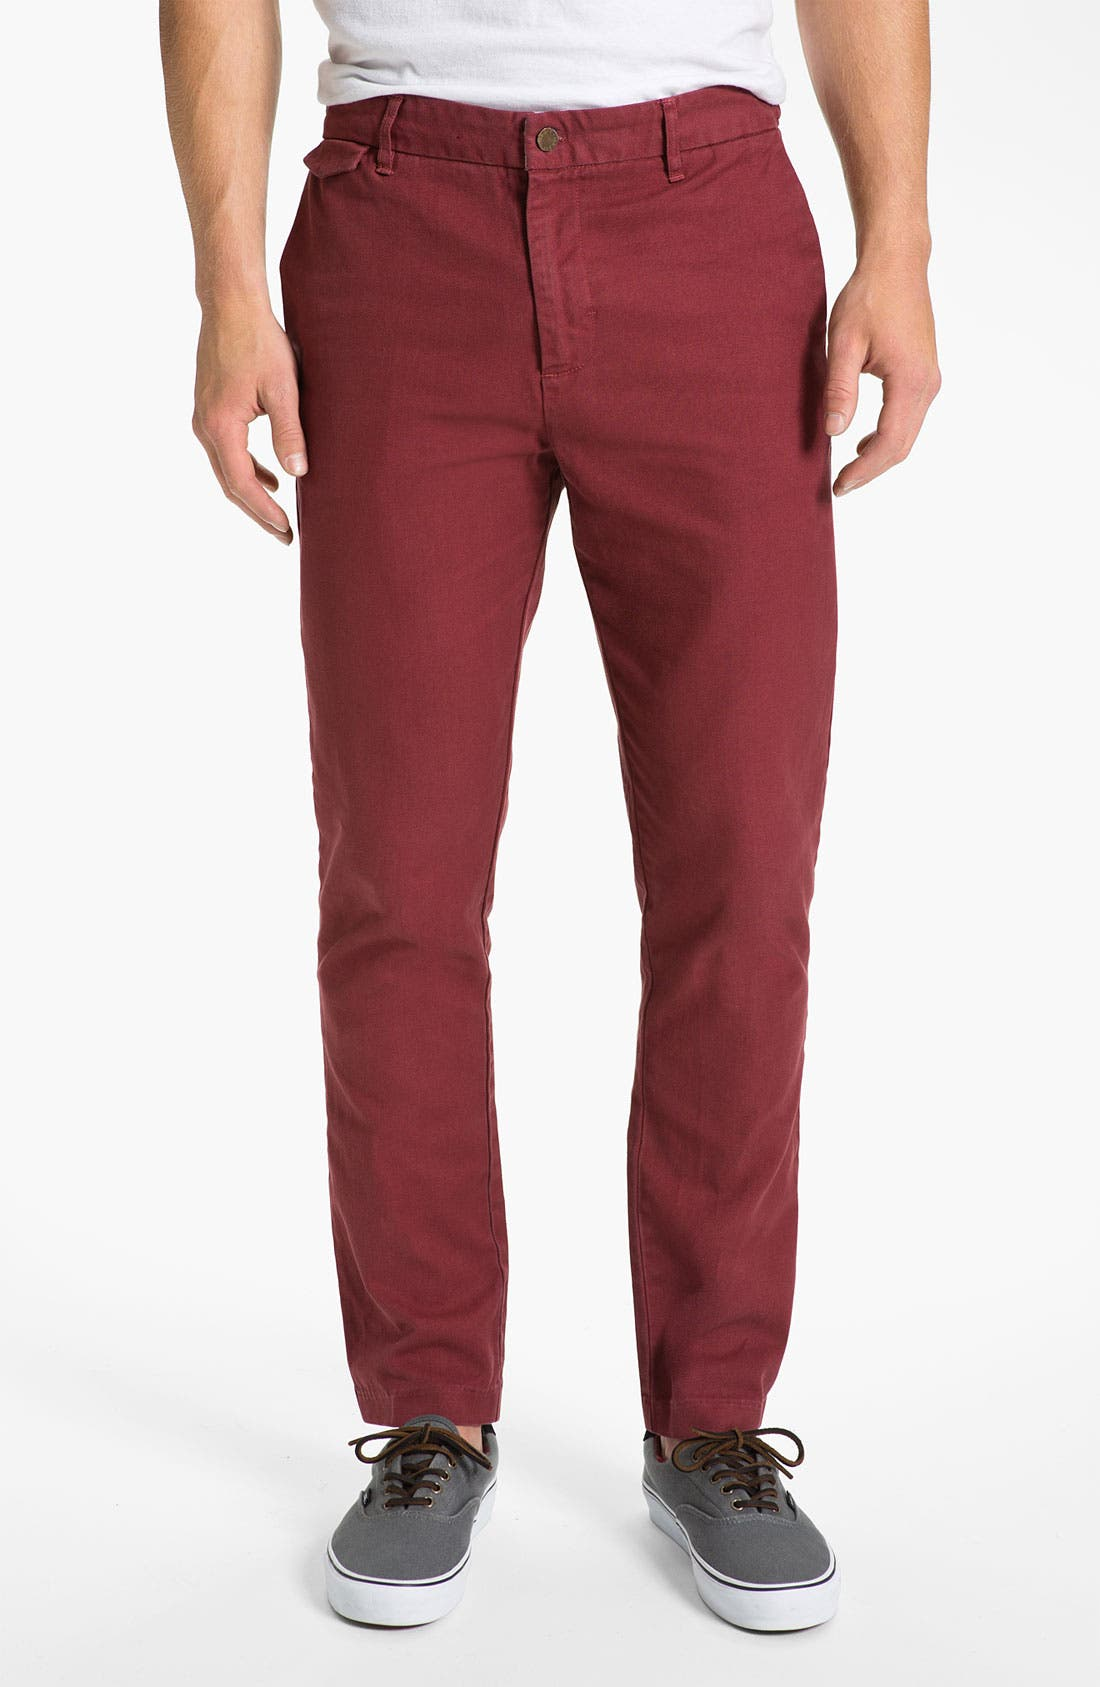 Alternate Image 1 Selected - Insight 'Civilian' Skinny Chinos